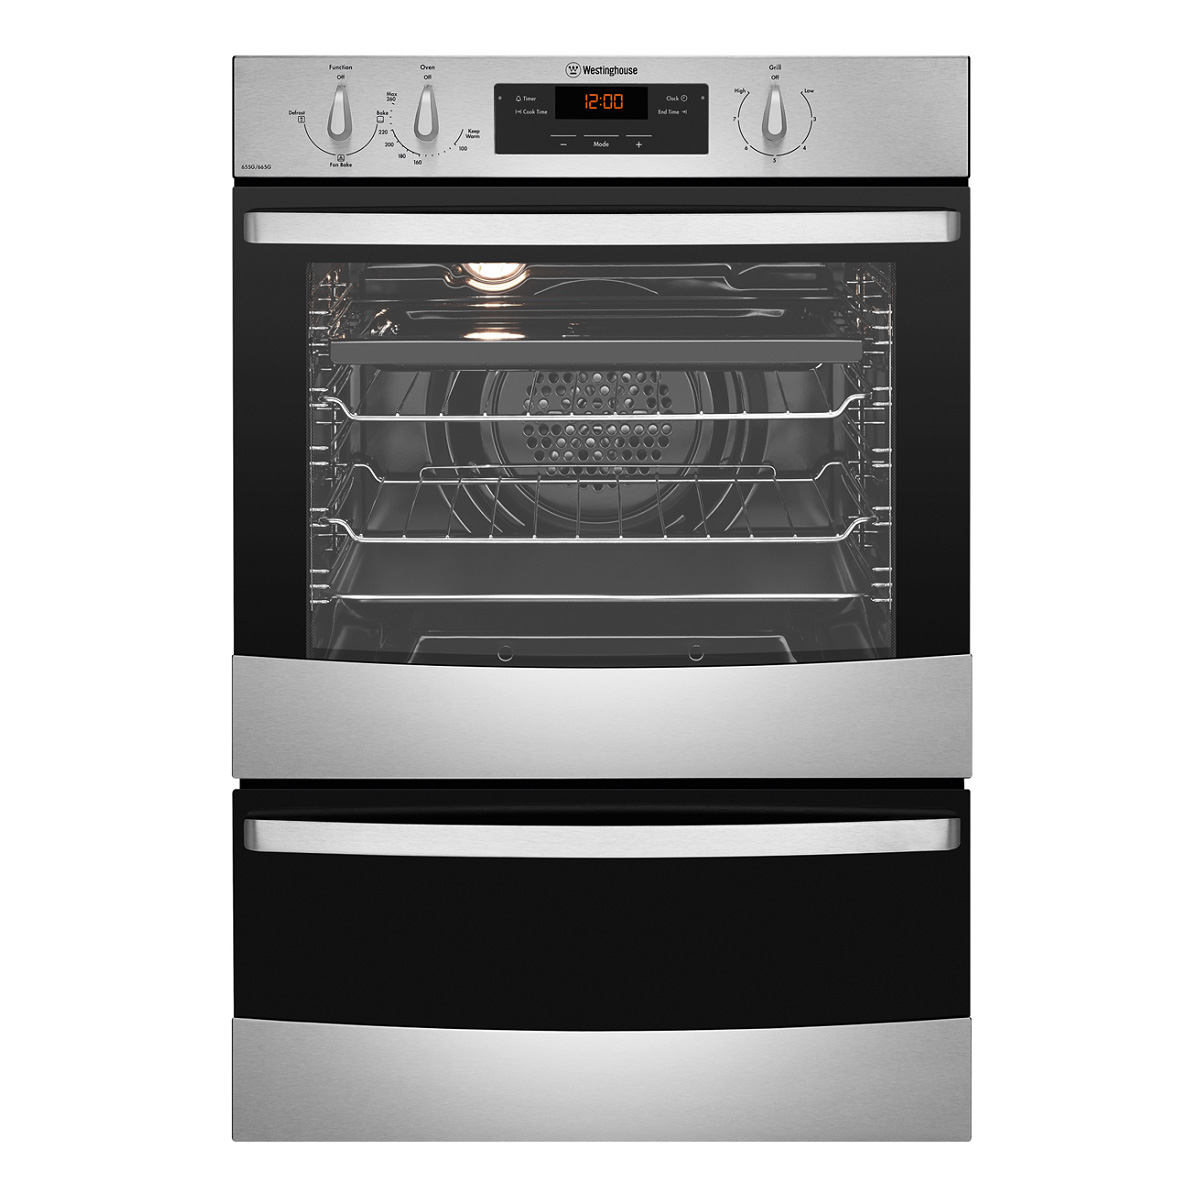 Westinghouse WVG665SLPG Gas Wall Oven